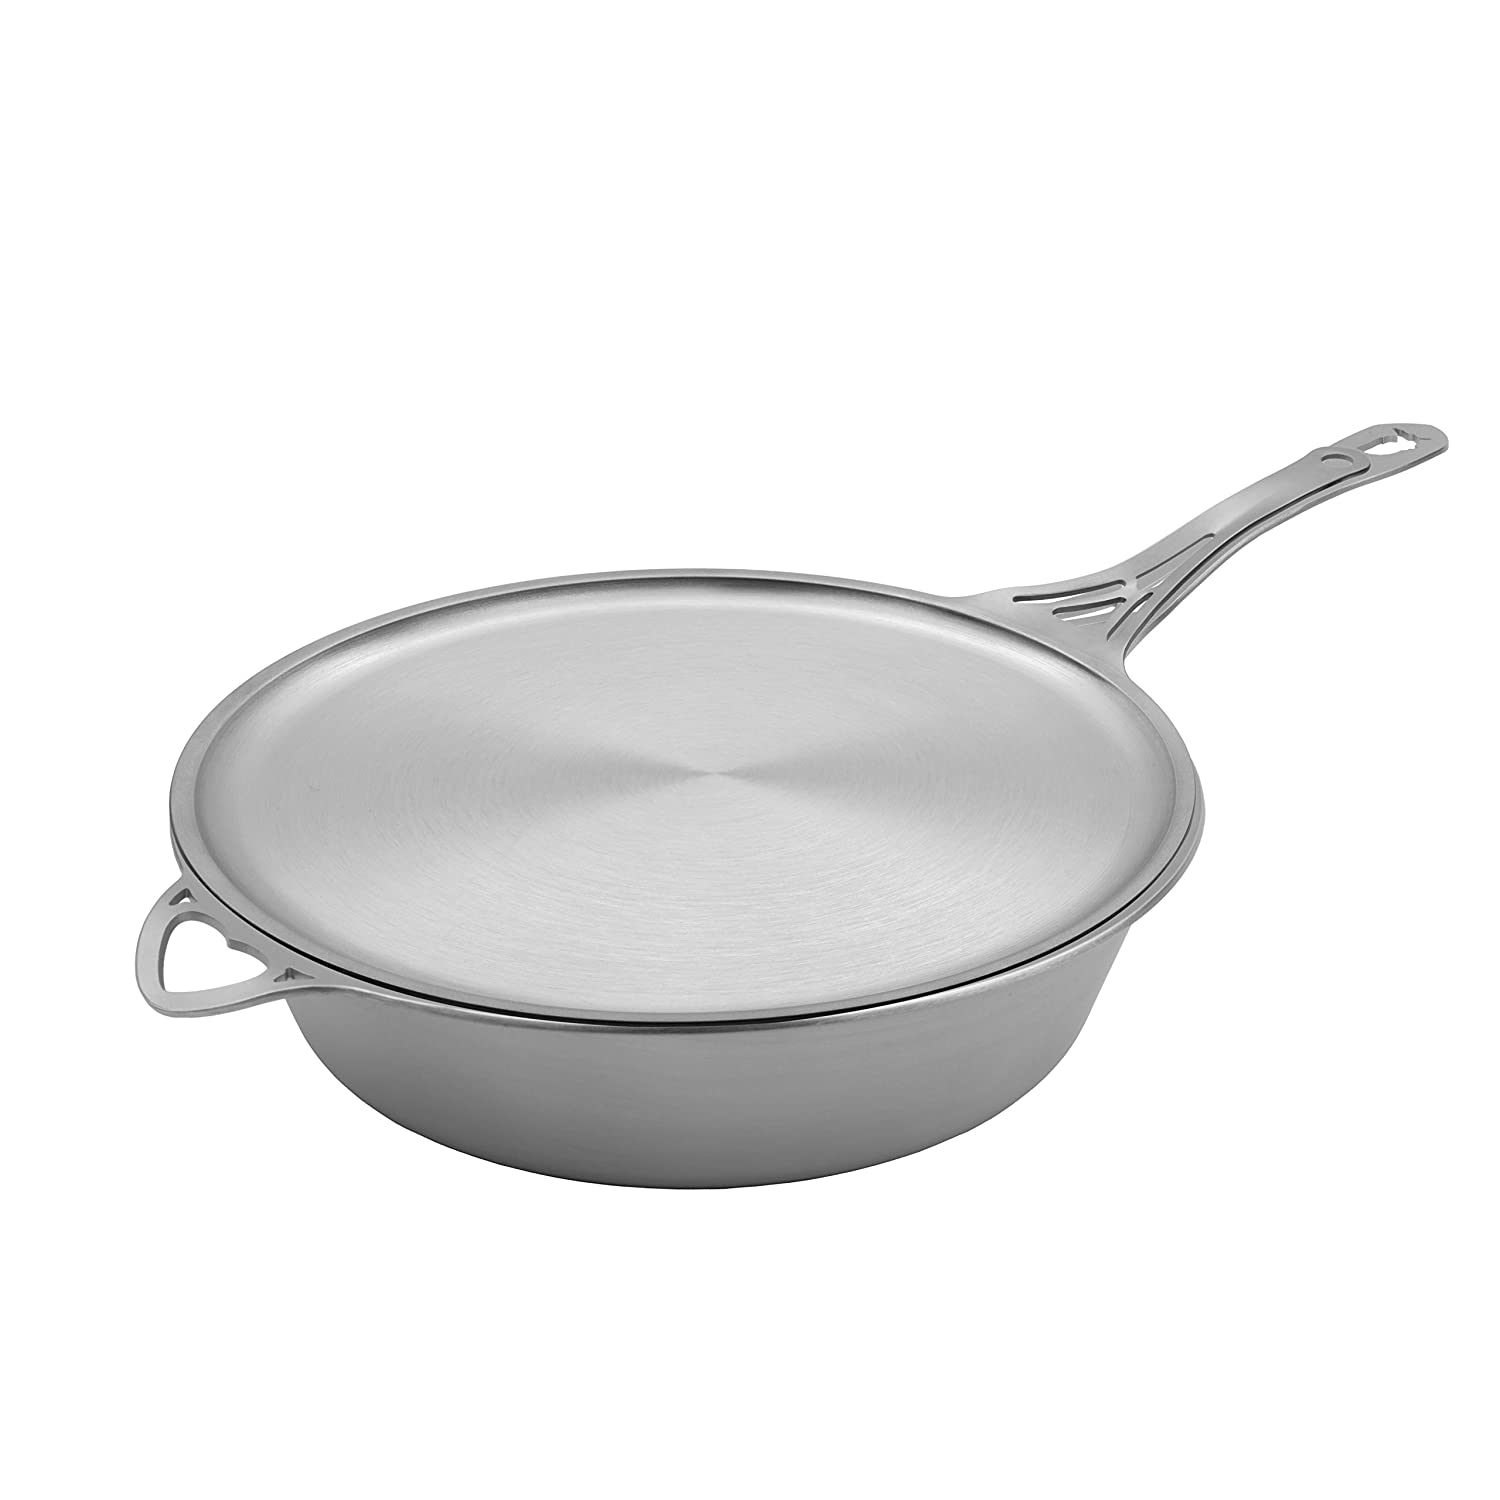 SOLIDTEKNICS nöni 11-inch Sauté Pan and Skillet Lid/Crêpe Pan – Two-Piece Seamless Cookware Set, 1/8-inch Ferritic Stainless Steel, Satin Finish, Made in the USA